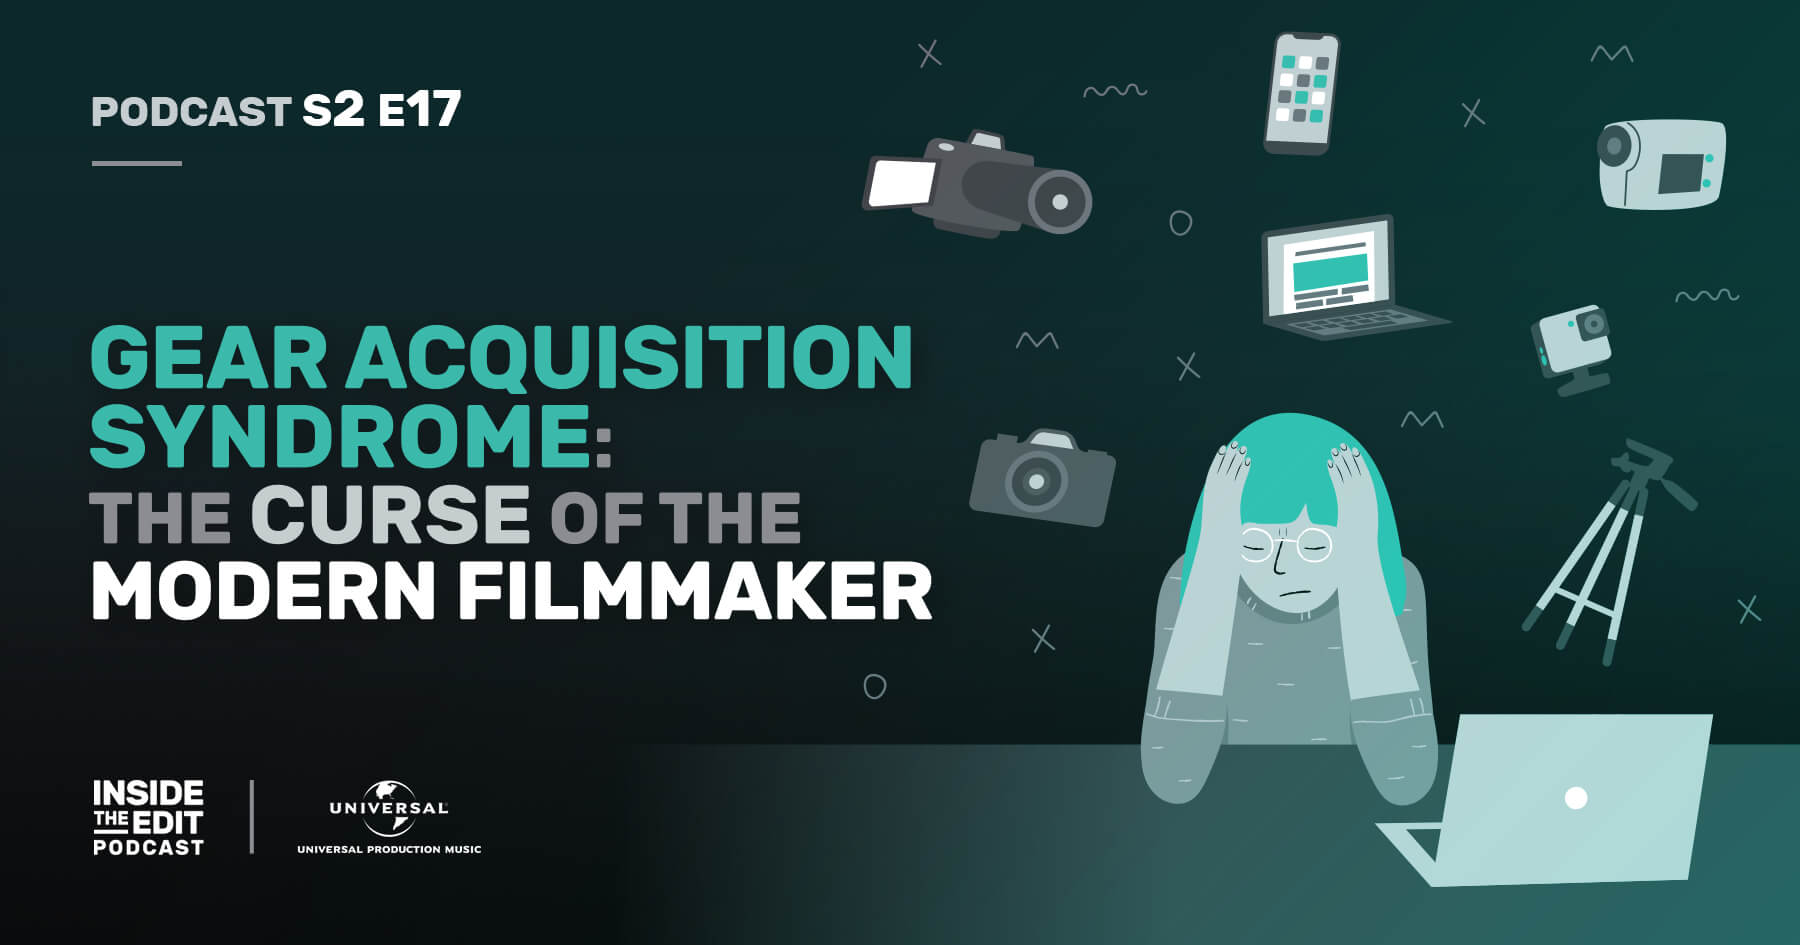 Gear Acquisition Syndrome: The Curse of The Modern Filmmaker